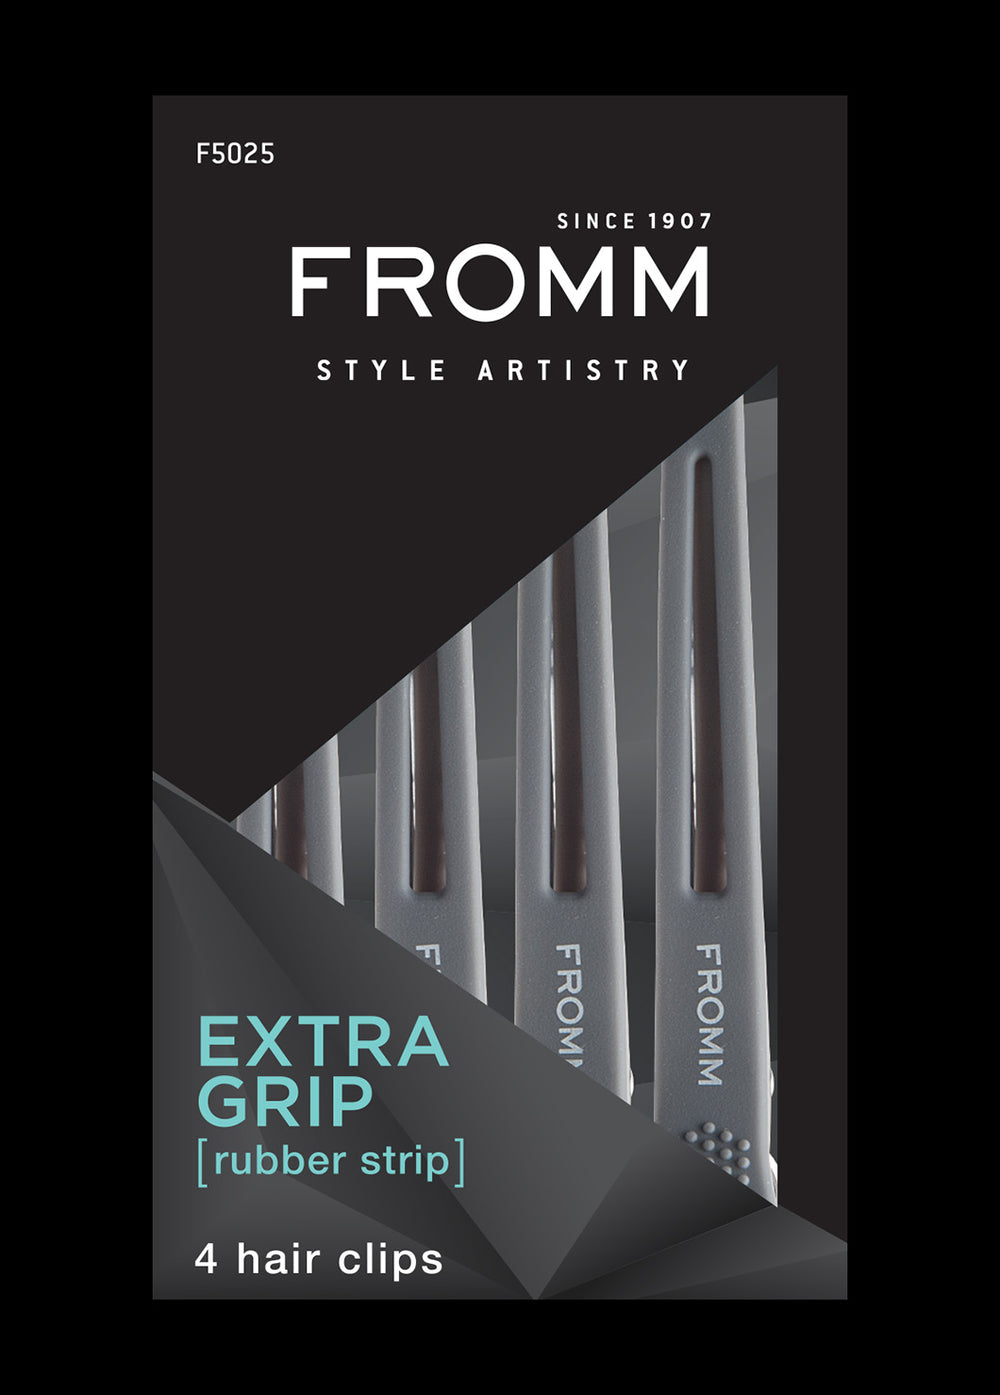 Fromm Pro Professional Salon Gray Rubberized Grip Hair Clip in packaging